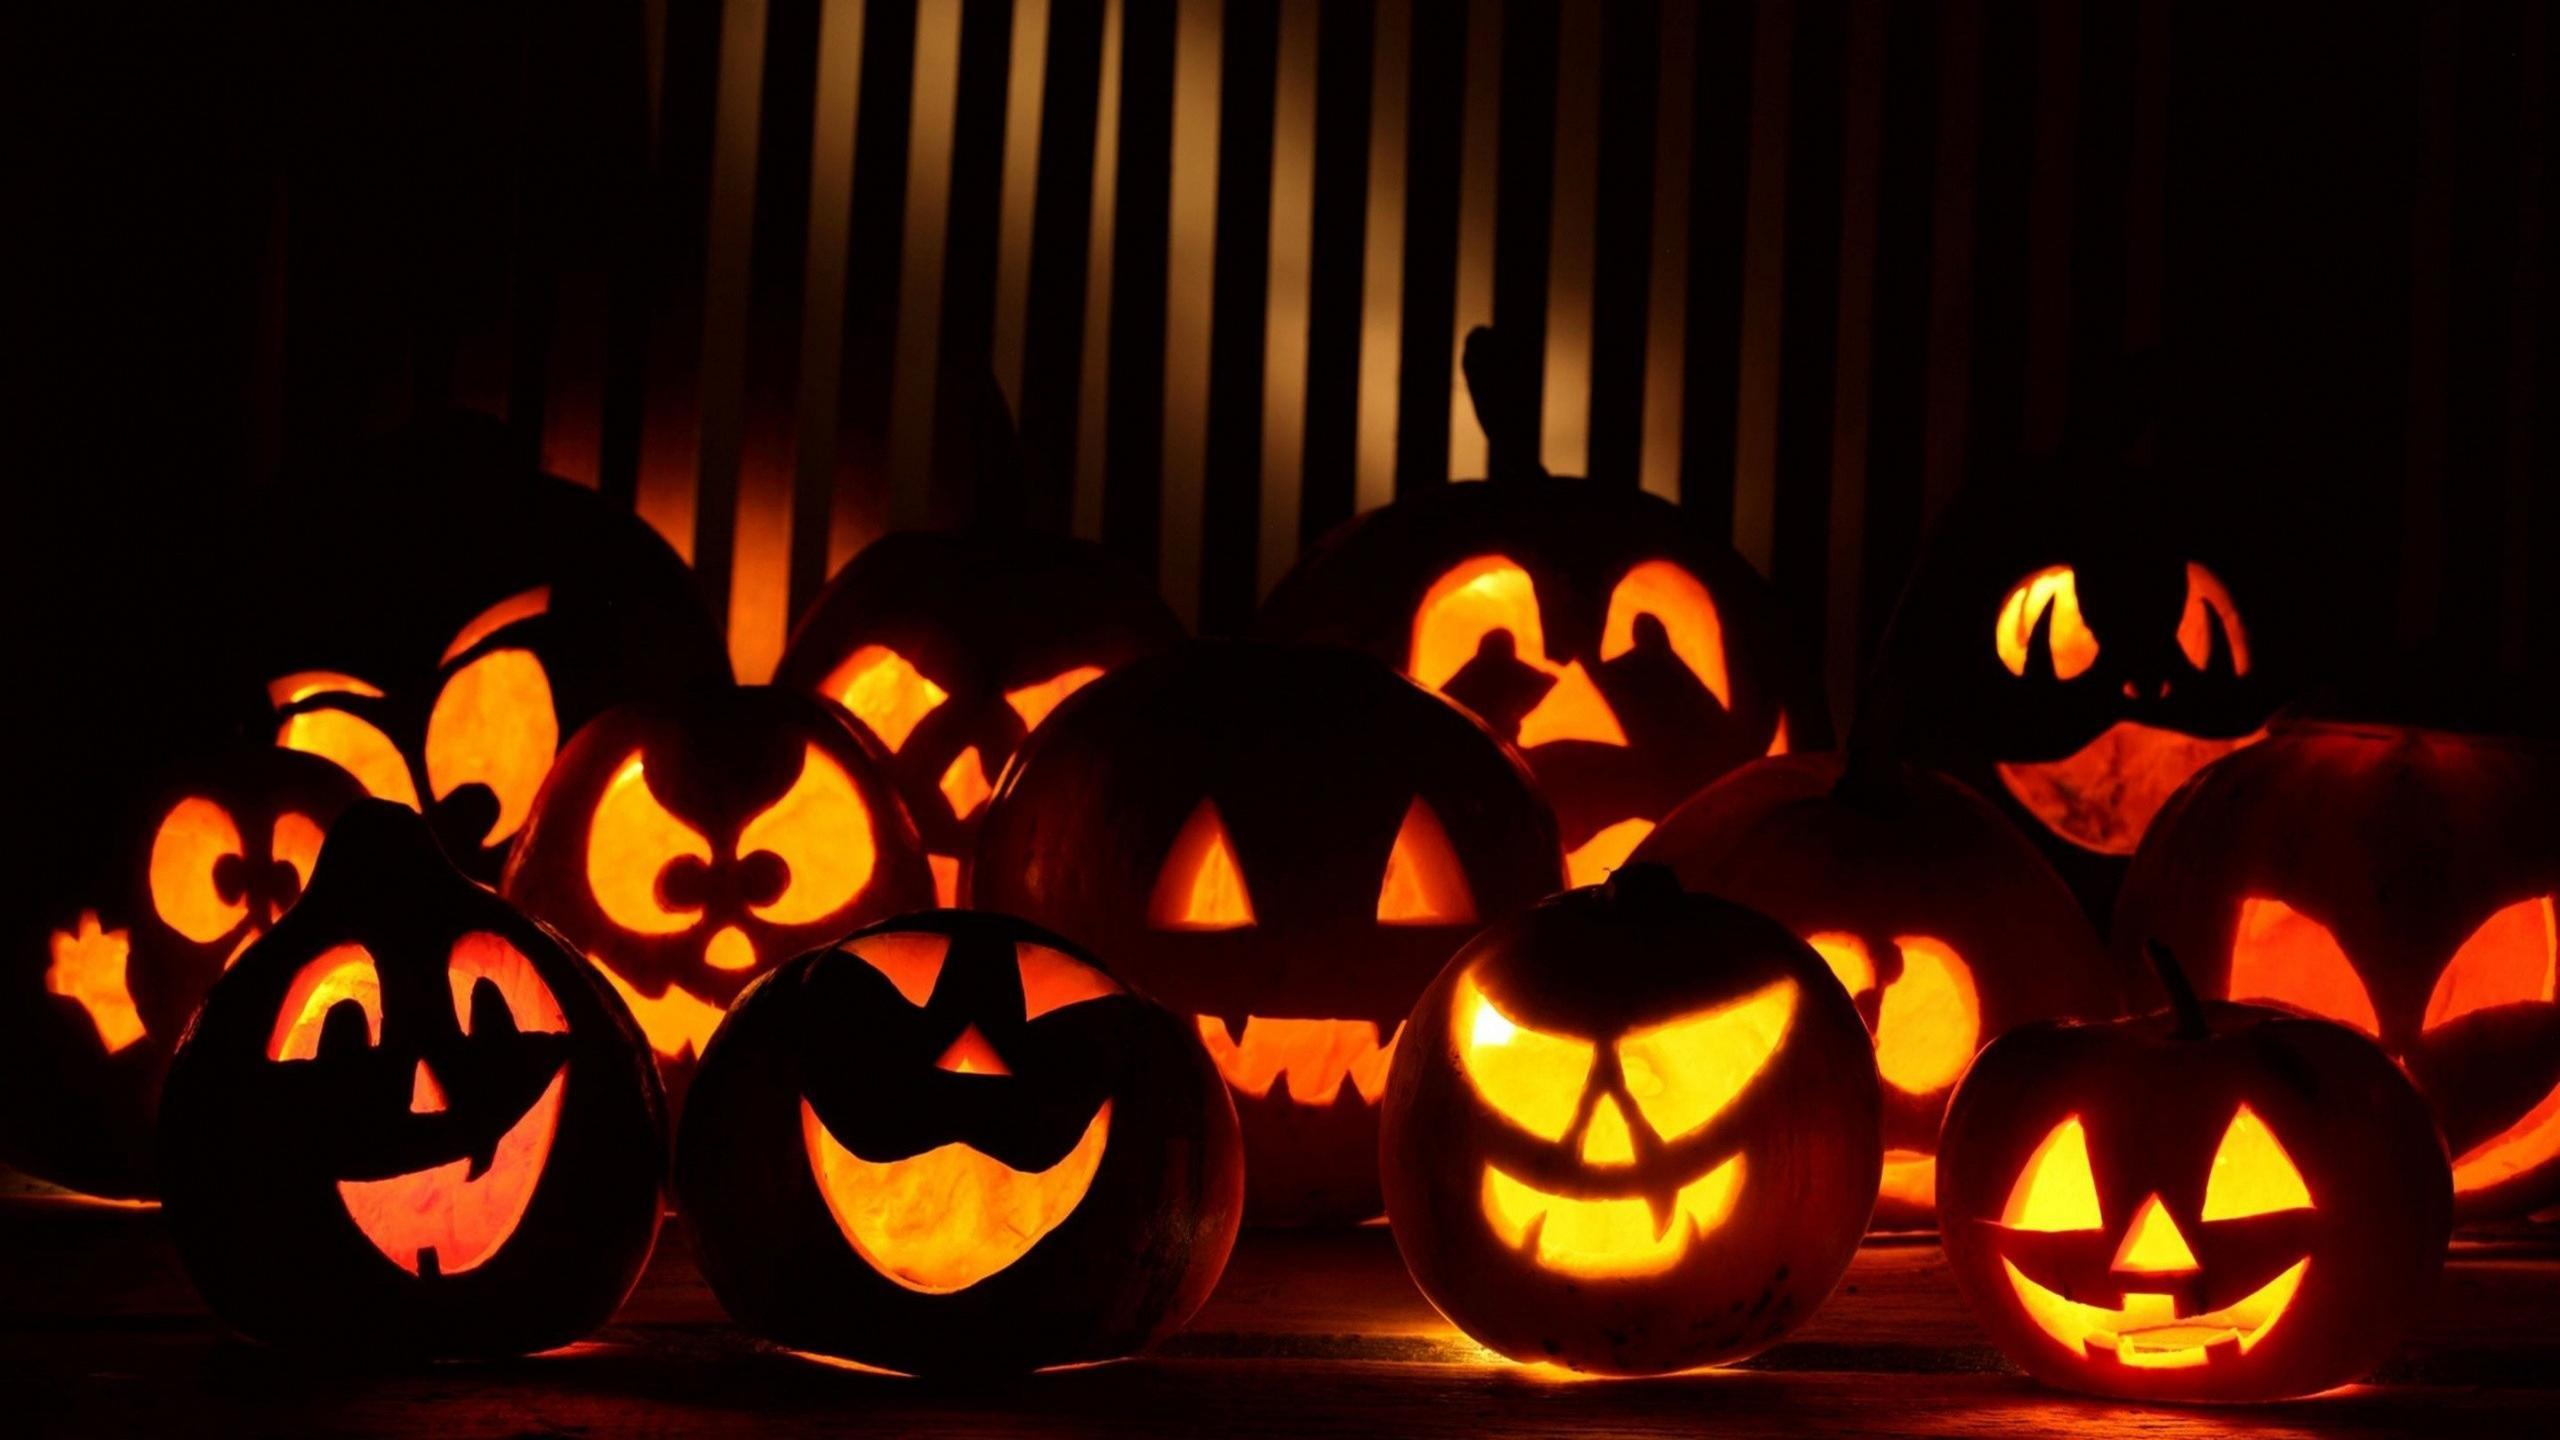 Halloween Pumpkin HD Wallpapers